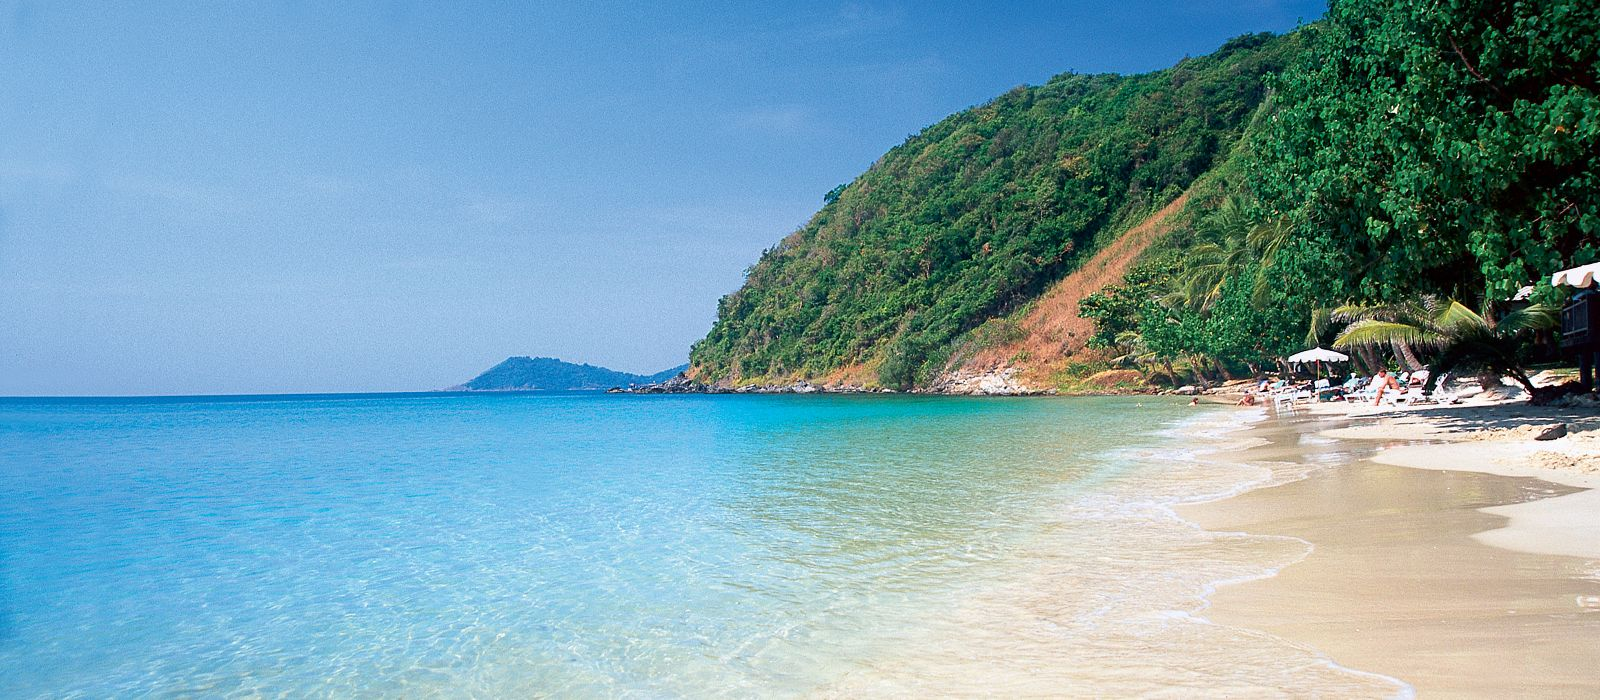 Destination Koh Phangan Thailand